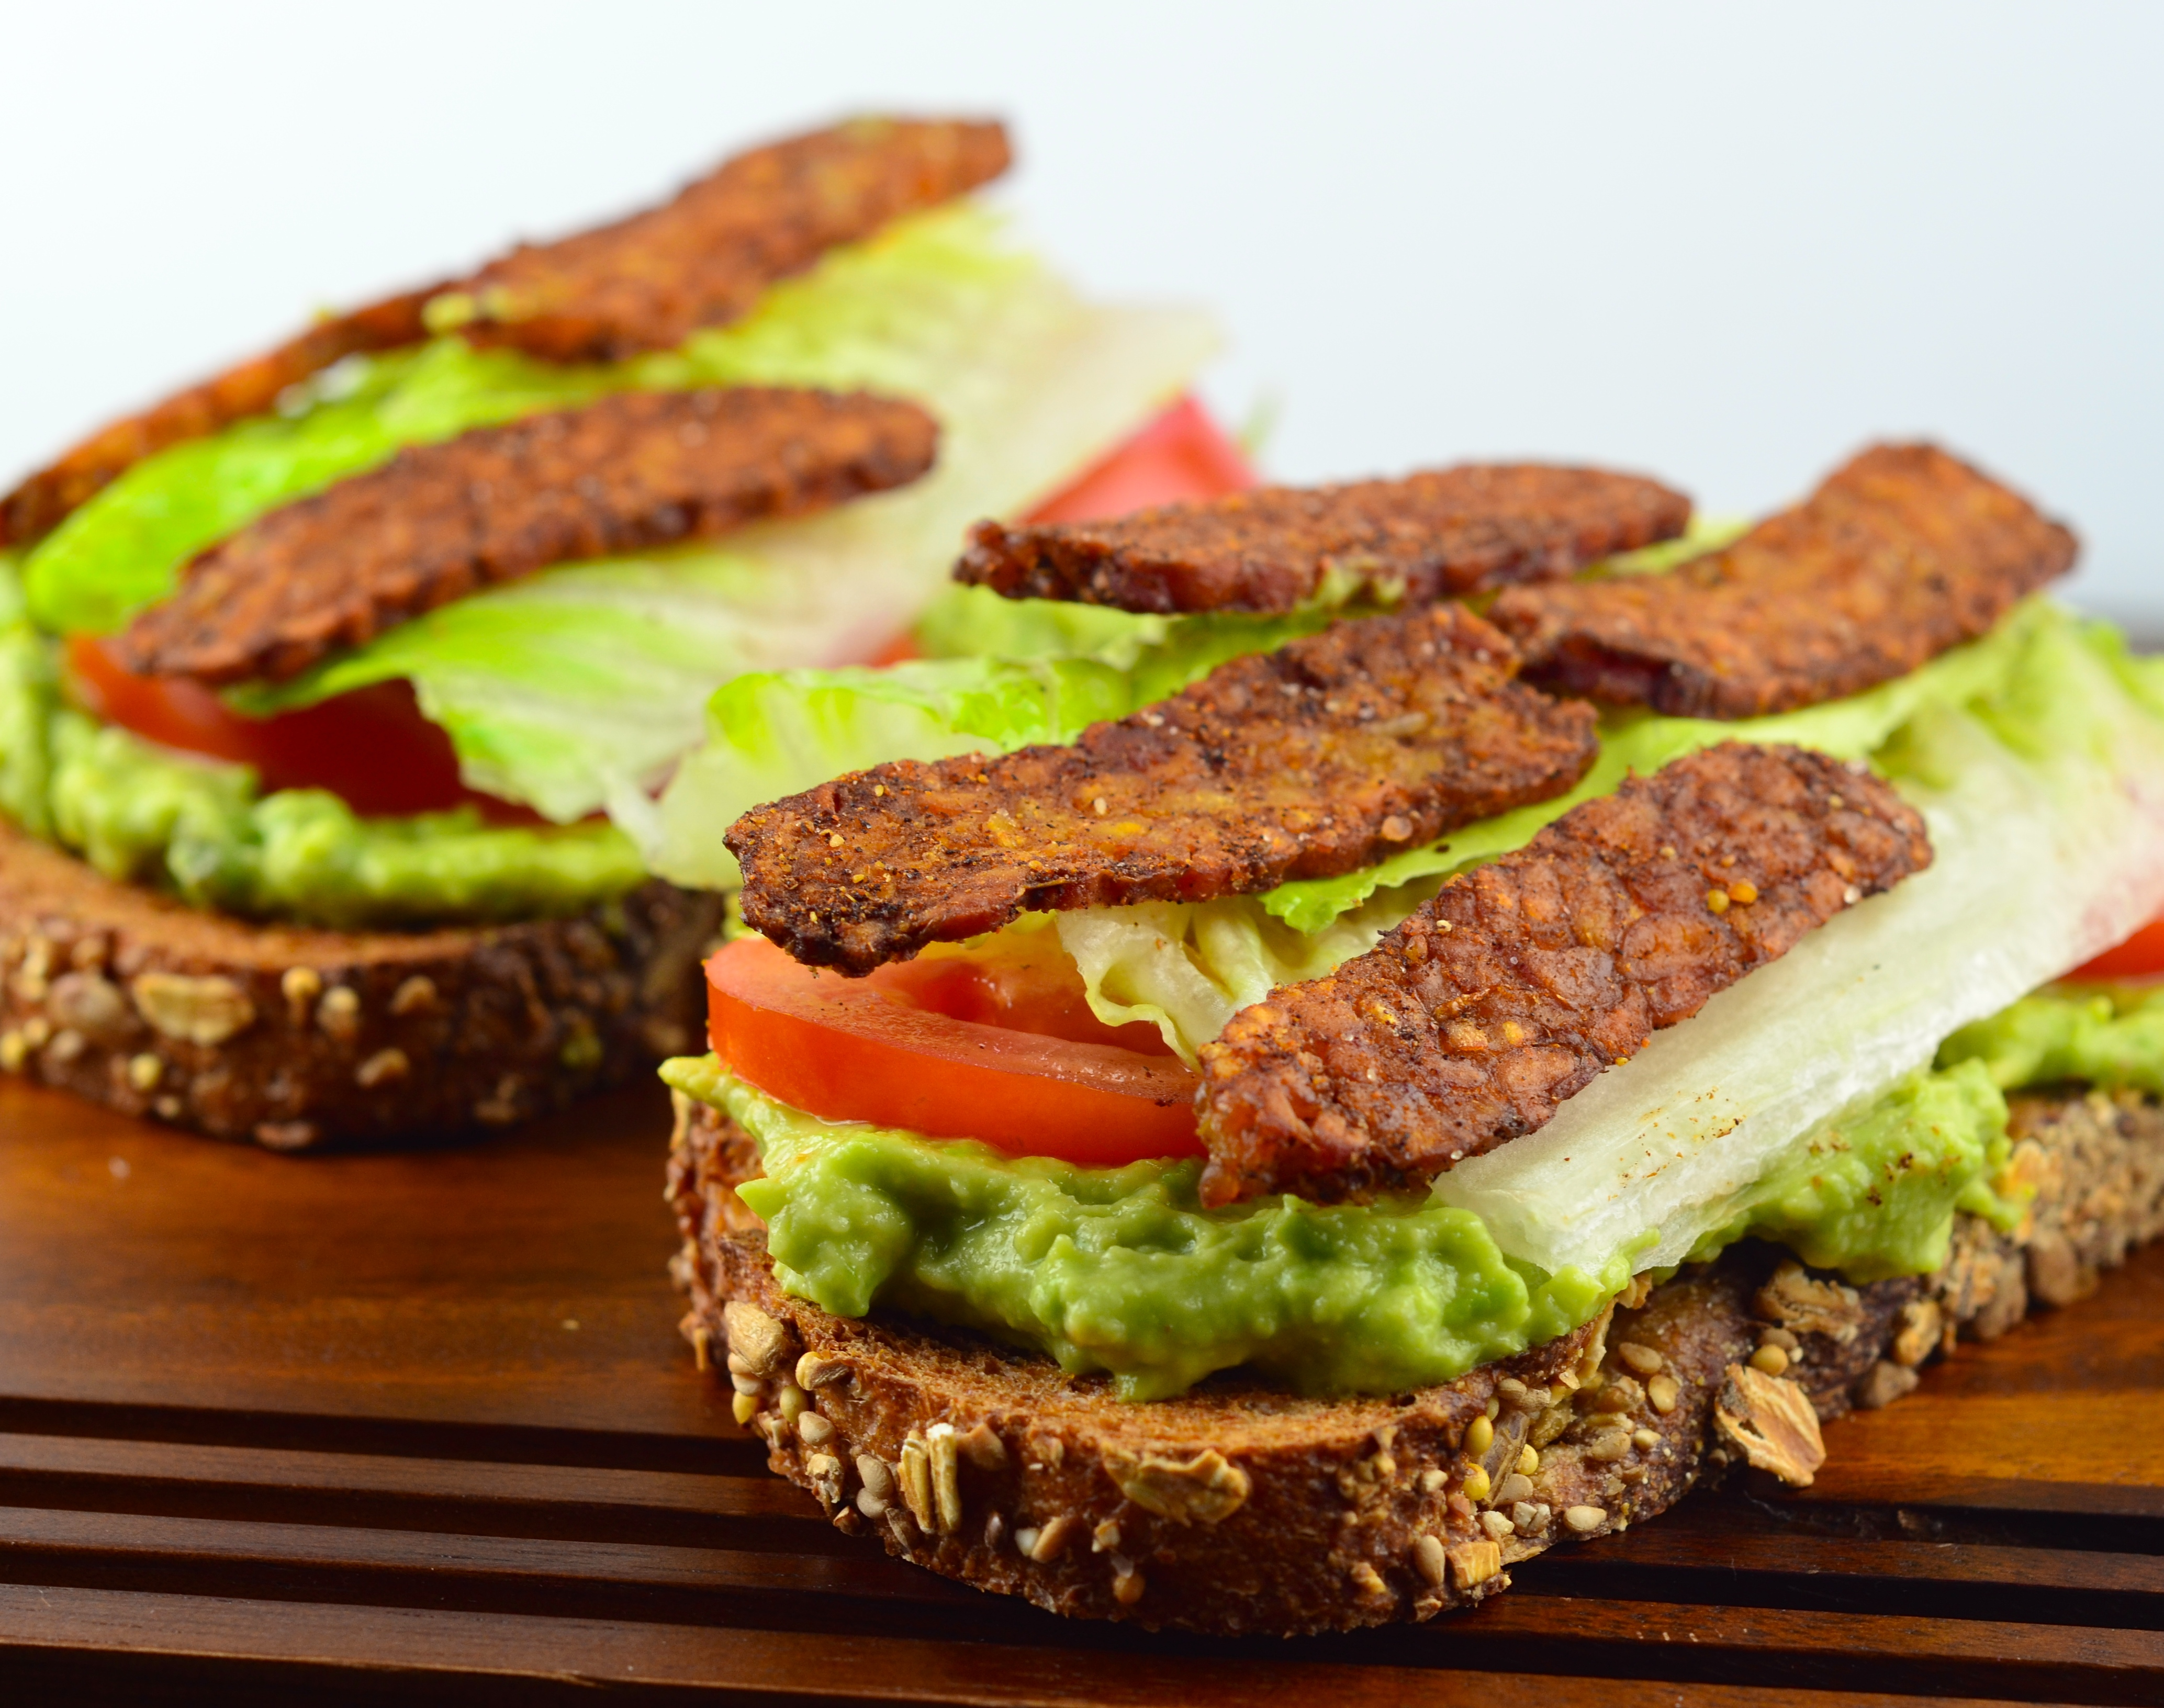 Vegan Avocado BLT Toast